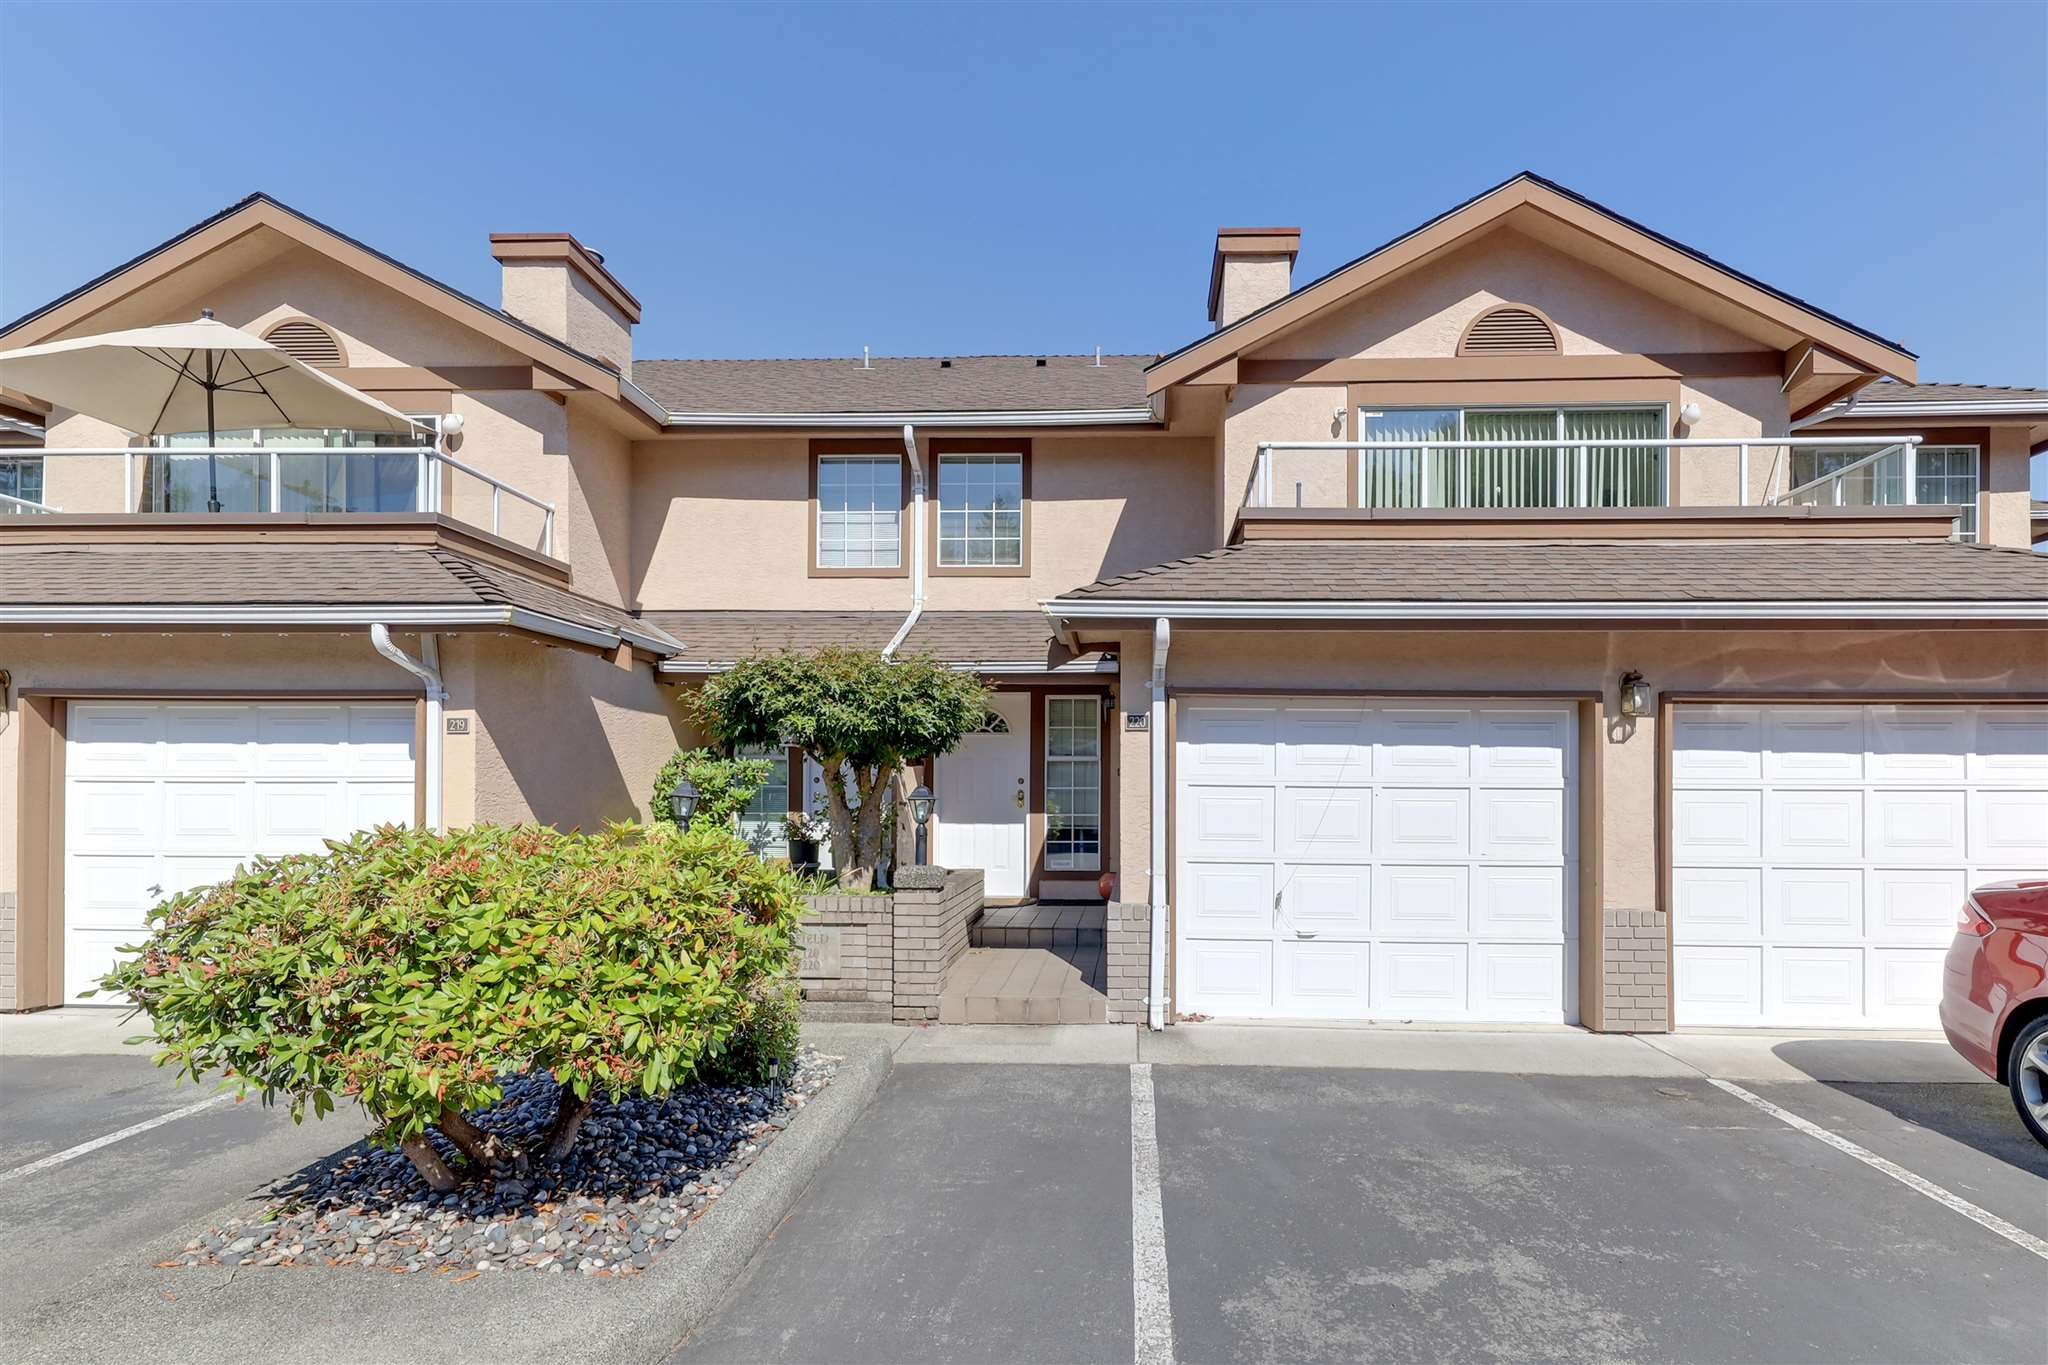 220 14861 98 AVENUE - Guildford Townhouse for sale, 2 Bedrooms (R2603895)